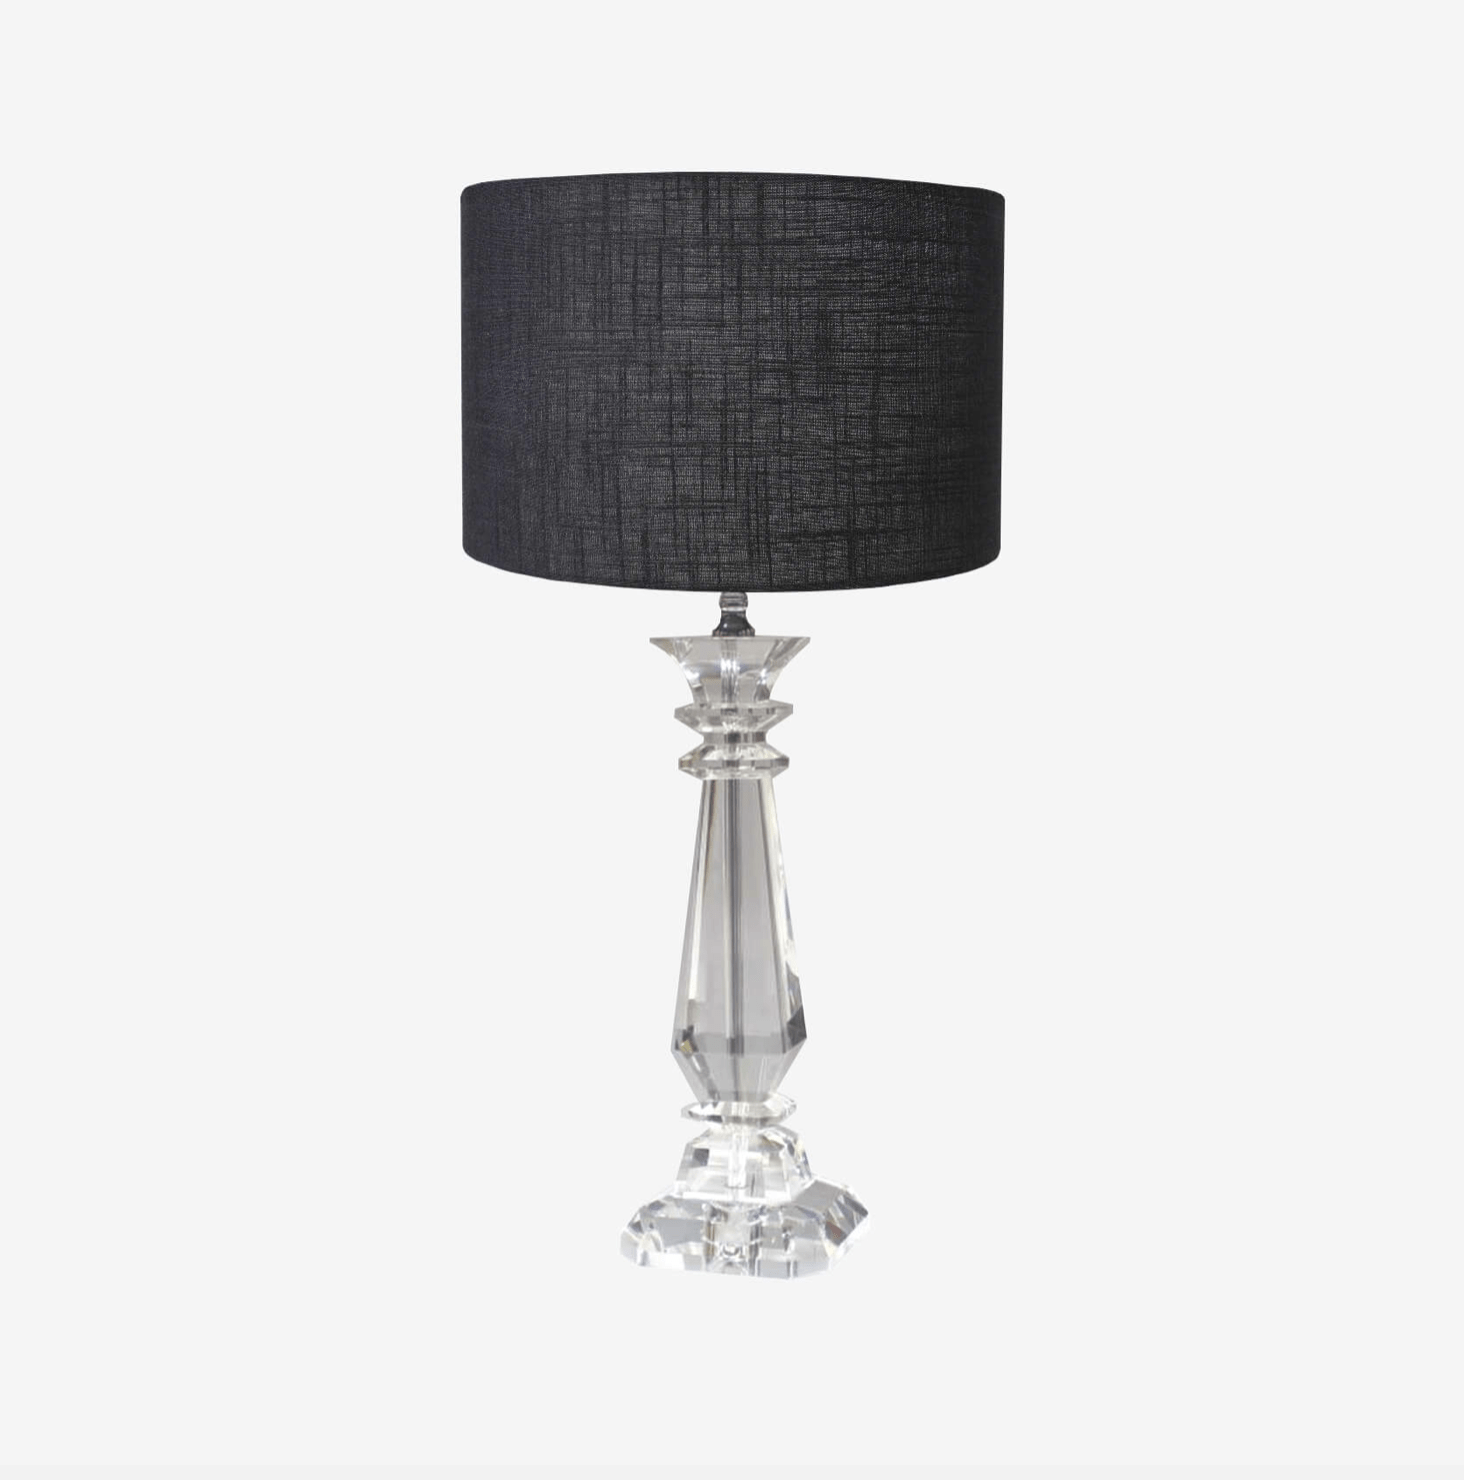 Table Lamps Chateau Table Lamp Base lighting shops lighting stores LED lights  lighting designer